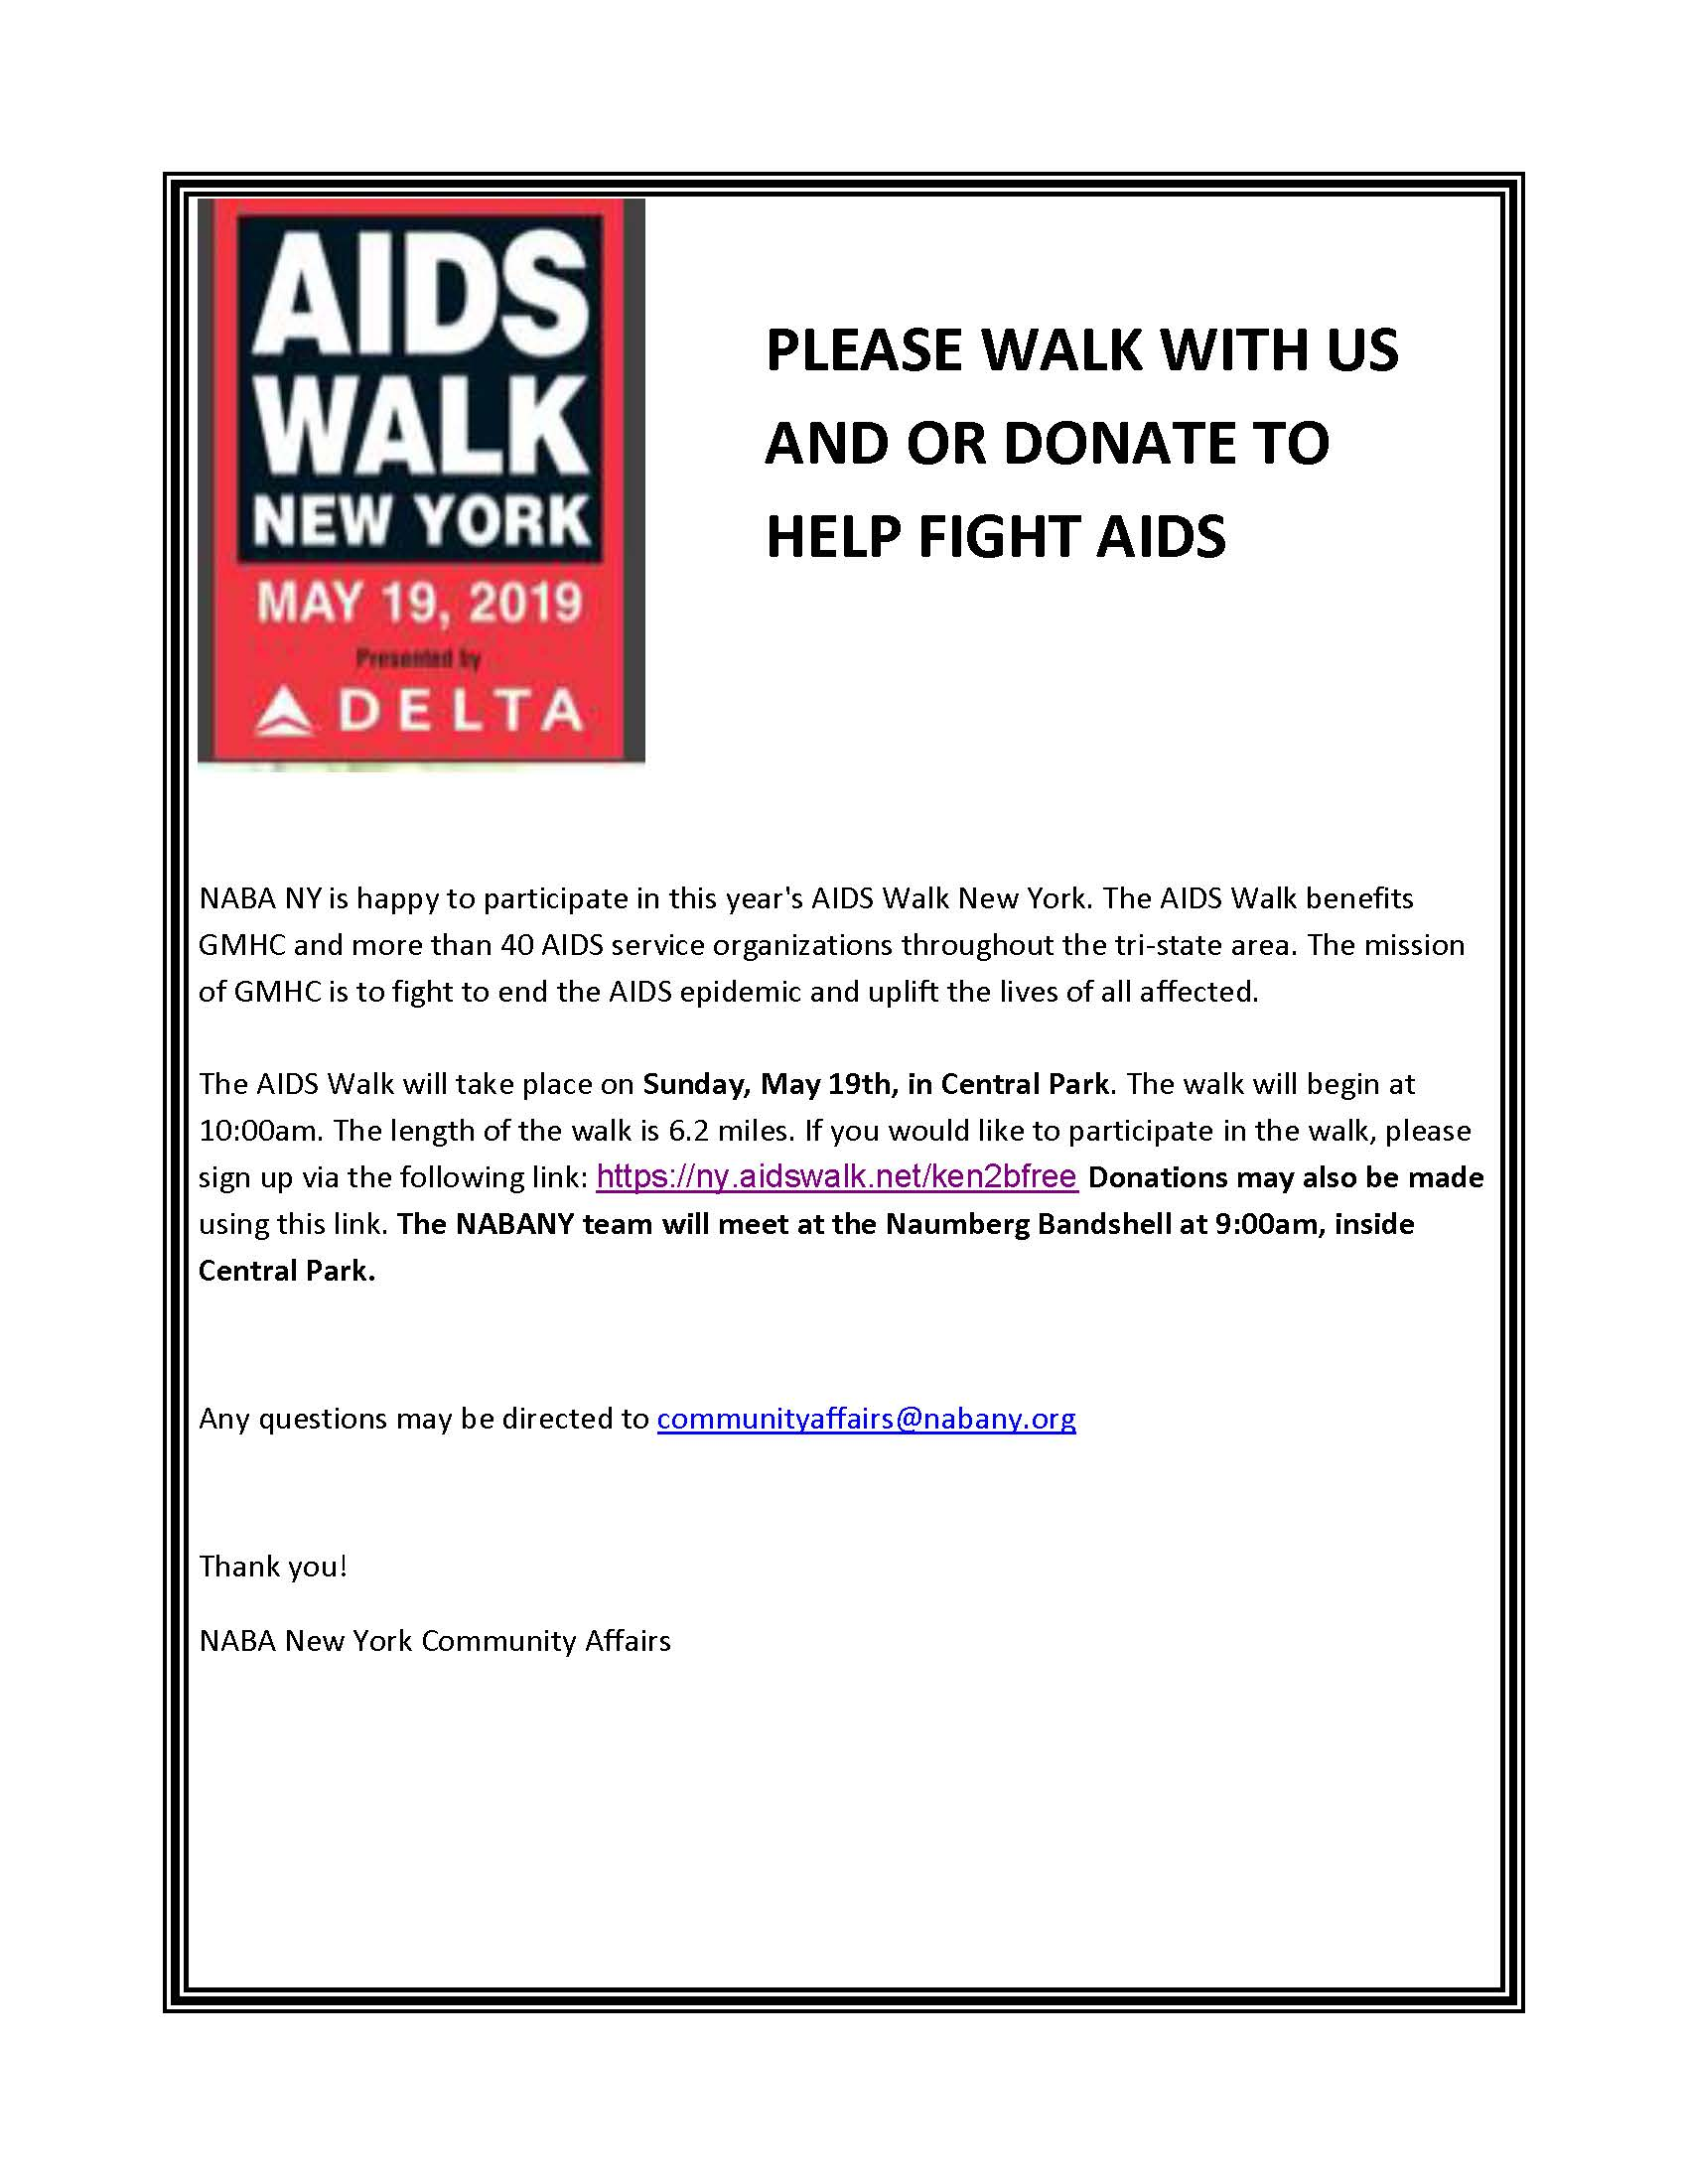 AIDS Walk New York 2019 Flyer.jpg